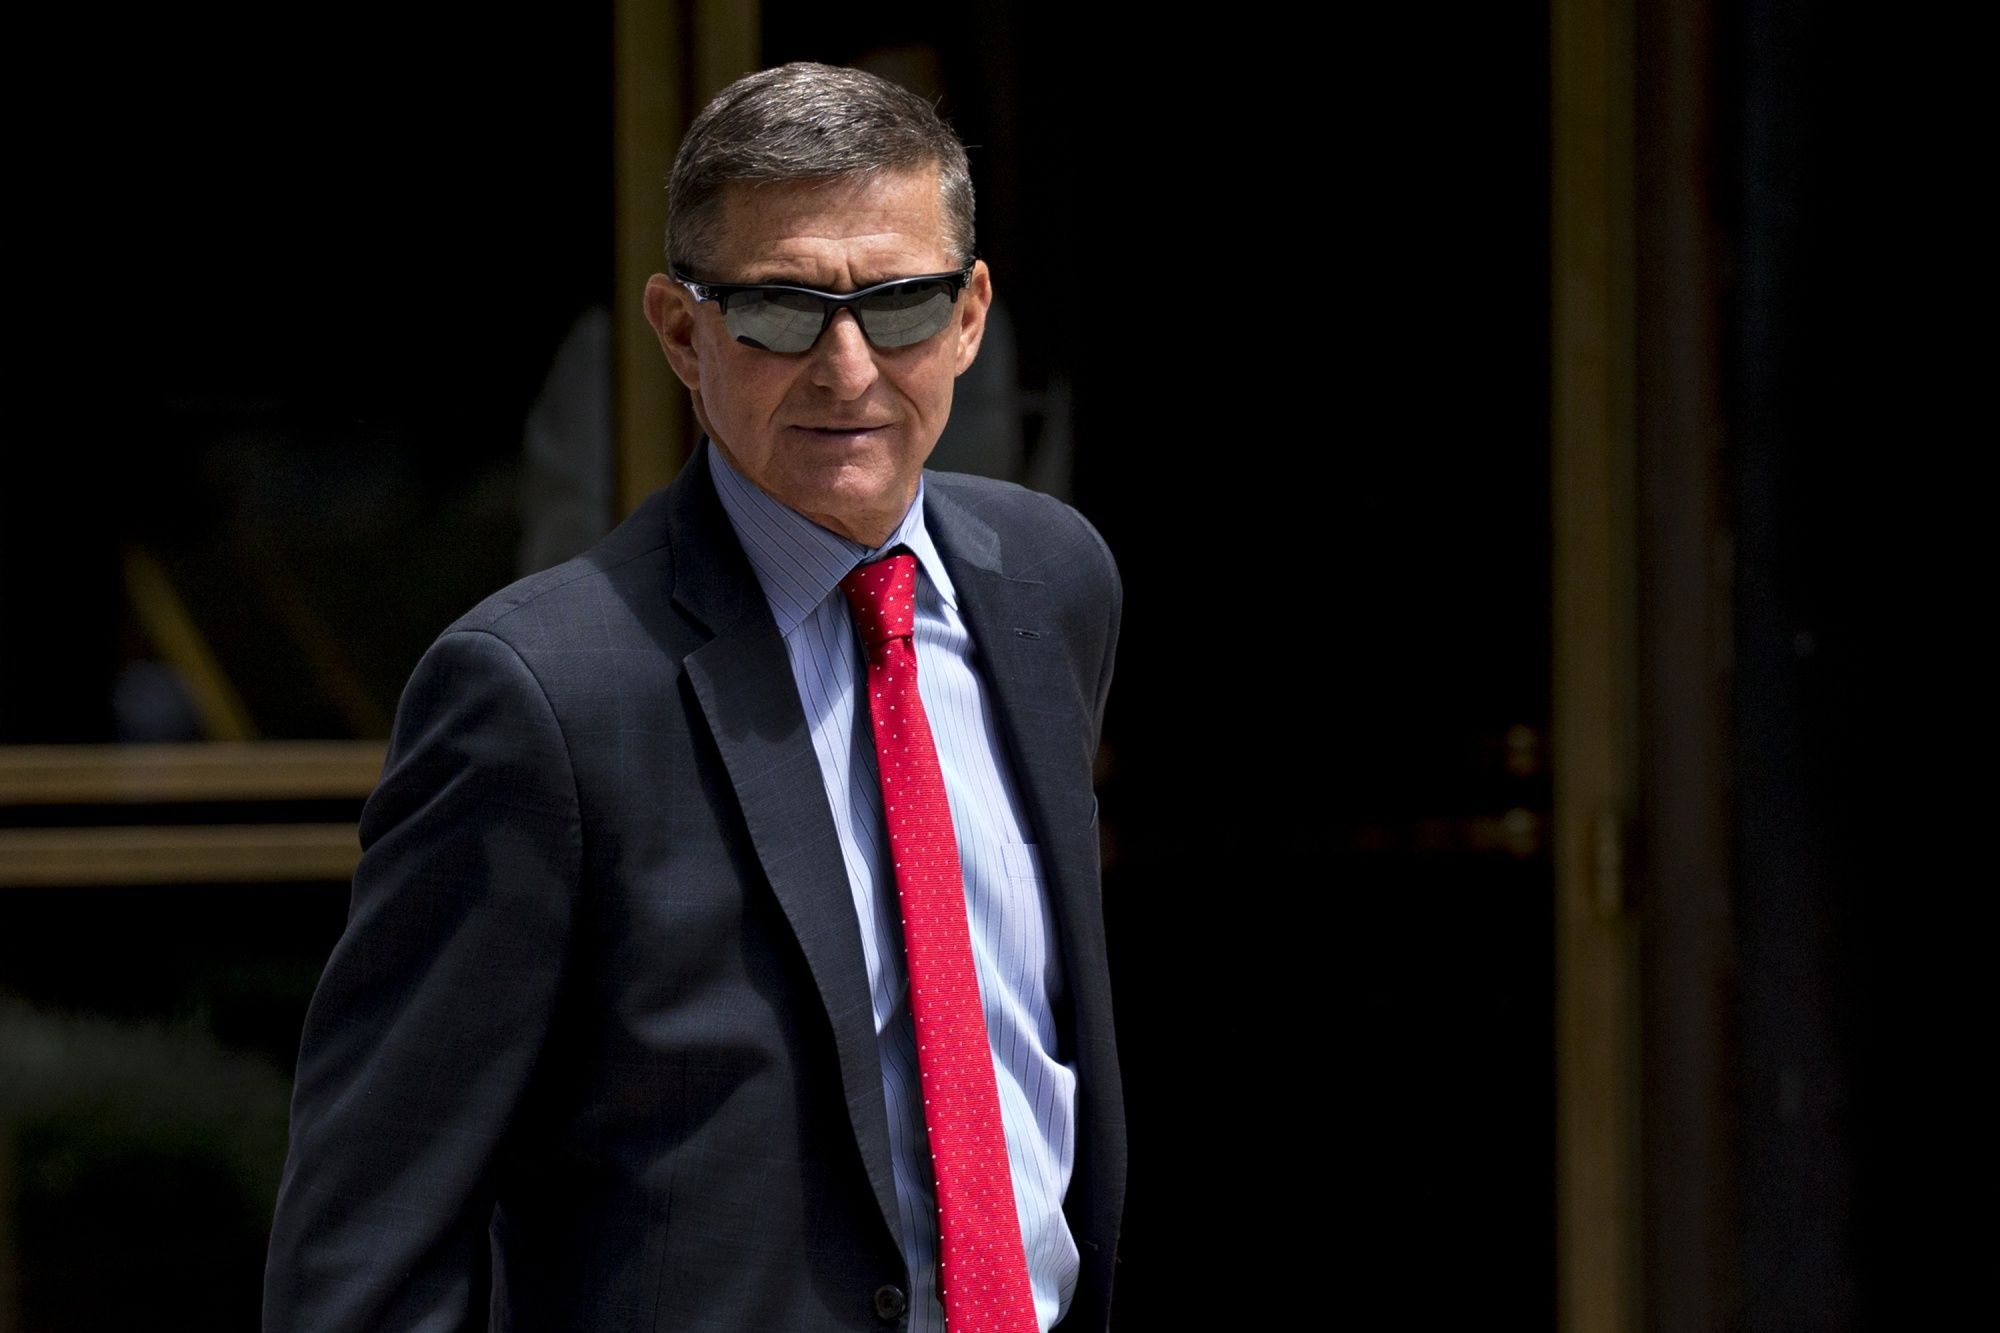 Ex-Trump Aide Michael Flynn Tries to Withdraw Guilty Plea